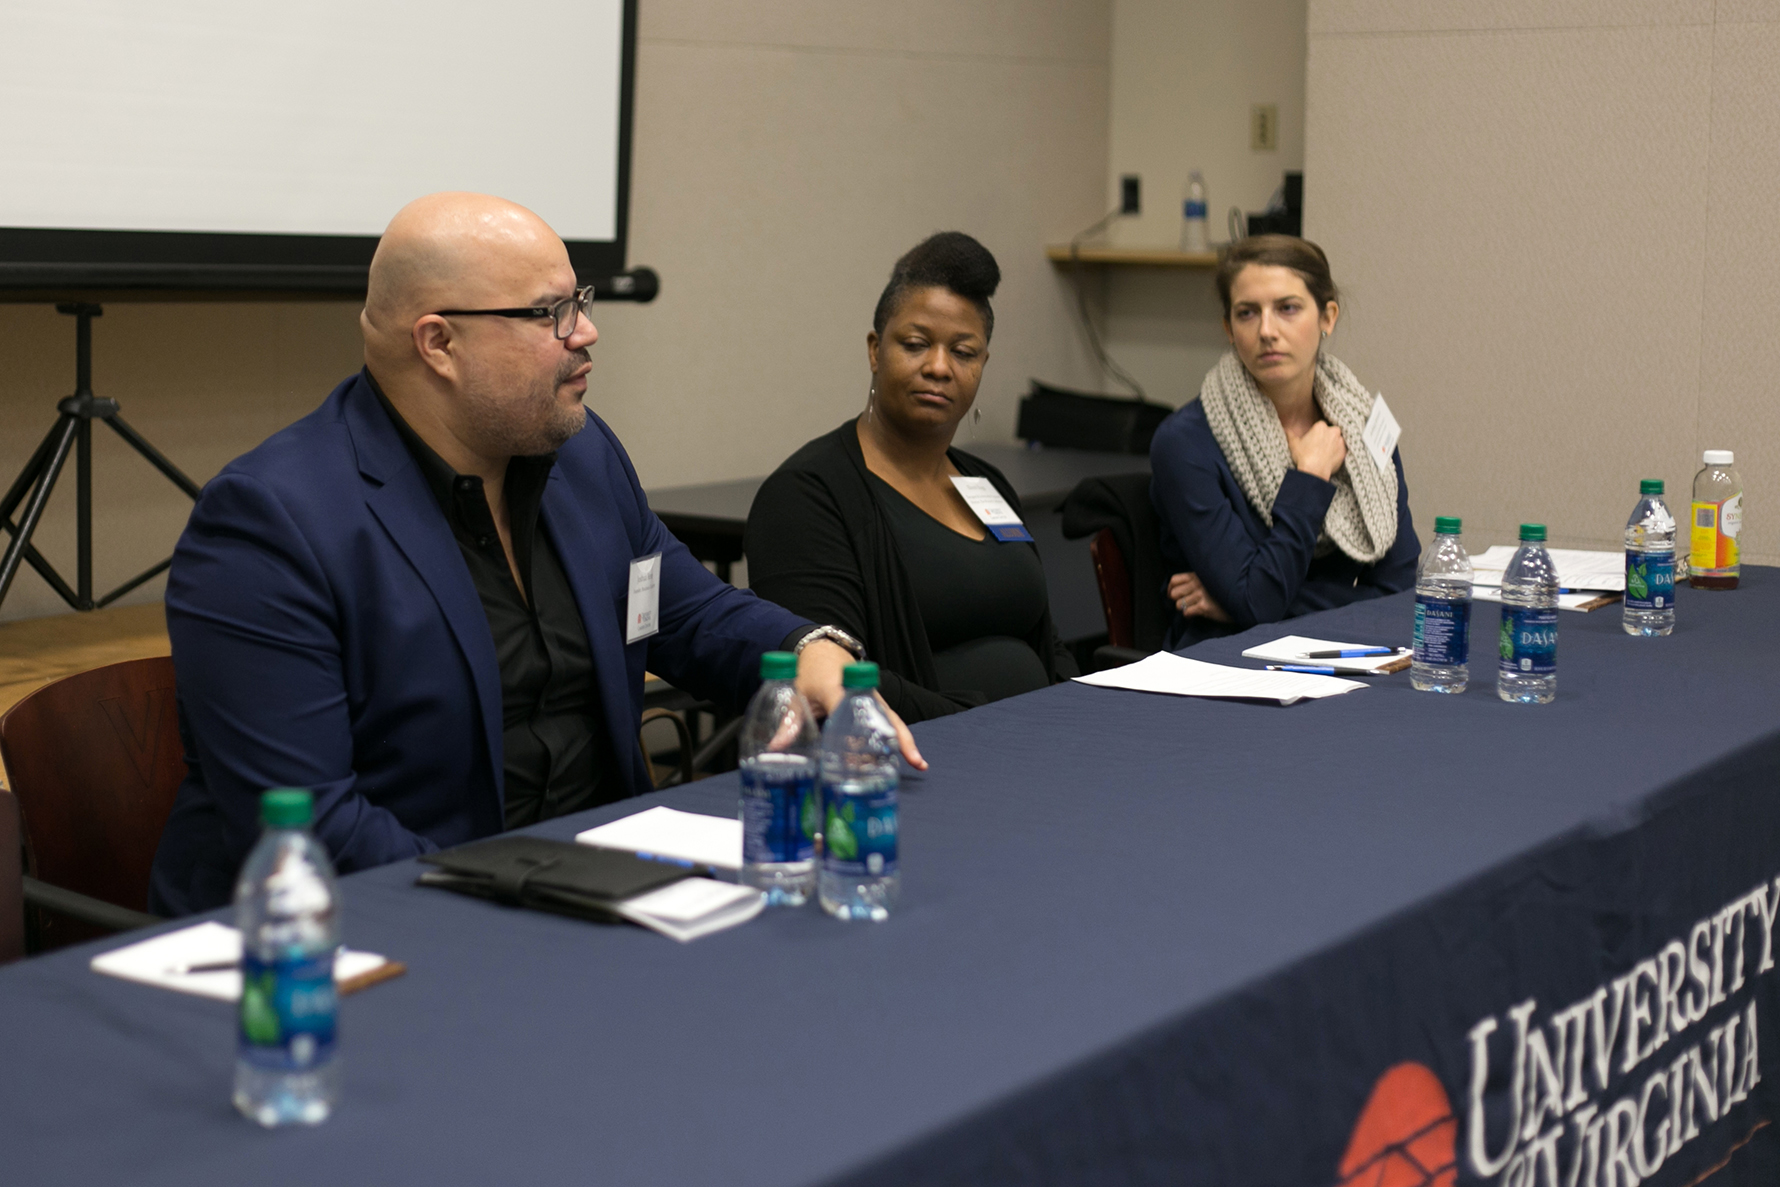 Sarad Davenport, Executive Director of City of Promise, answered questions from UVA students in attendance.